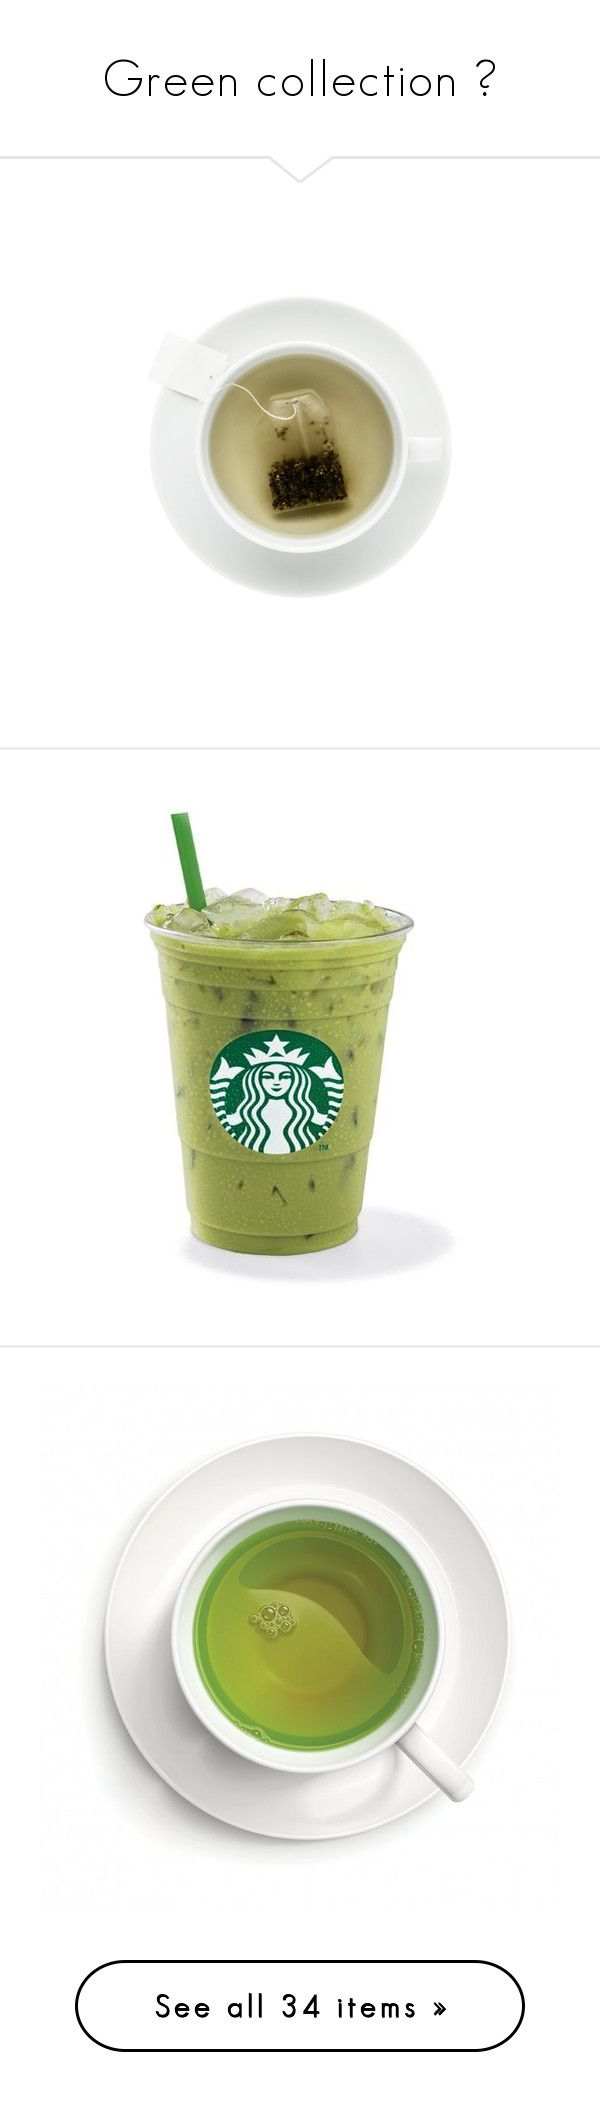 """""""Green collection 🌿"""" by sidney-roignant ❤ liked on Polyvore featuring fillers, food, drinks, tea, food and drink, starbucks, backgrounds, detail, embellishment and round"""